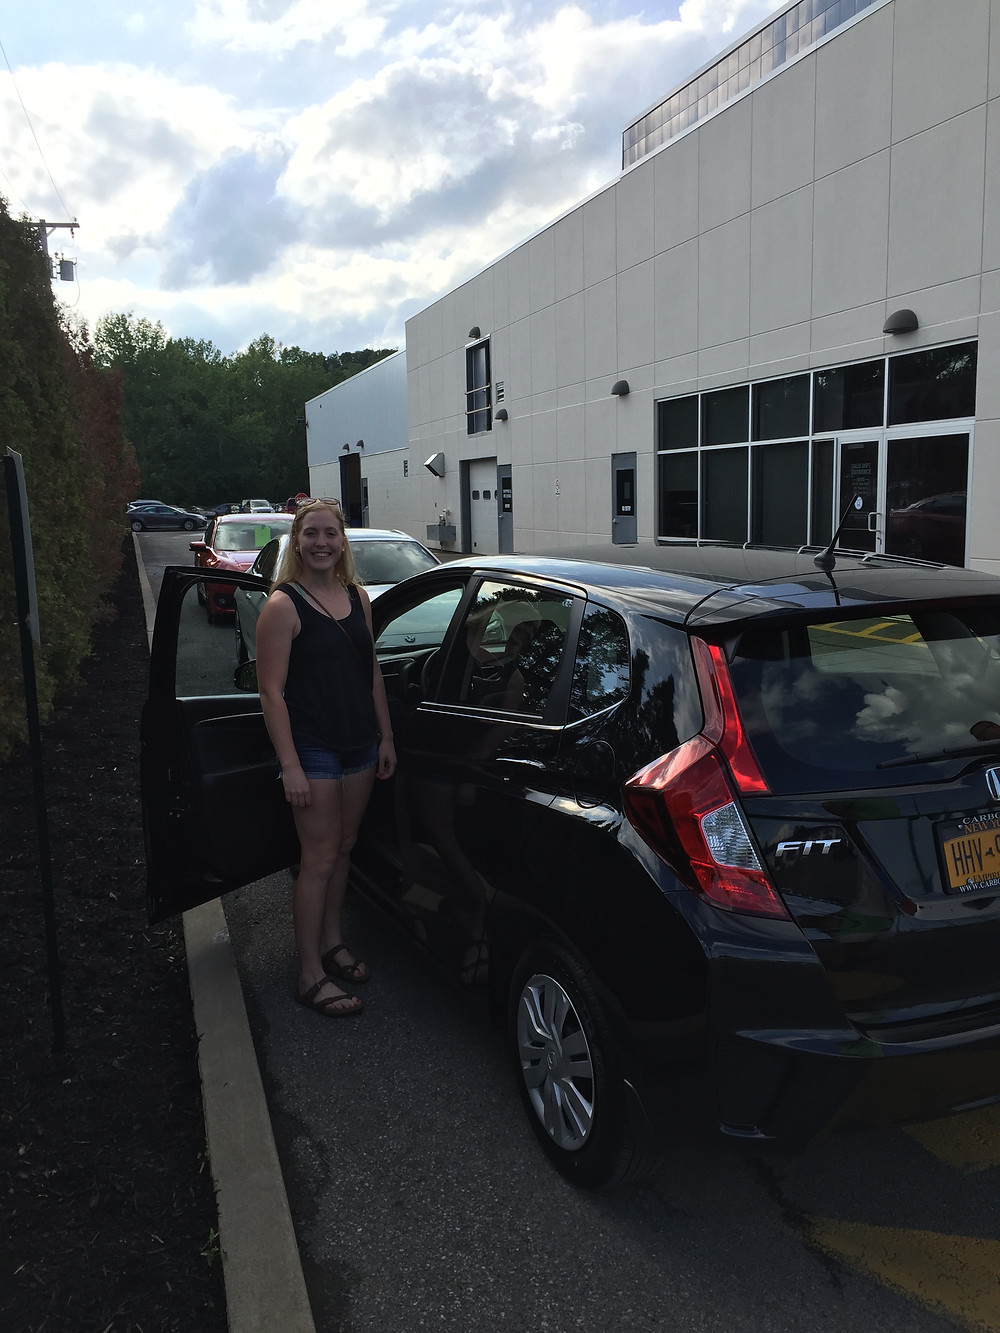 With my new car! It's a Honda Fit